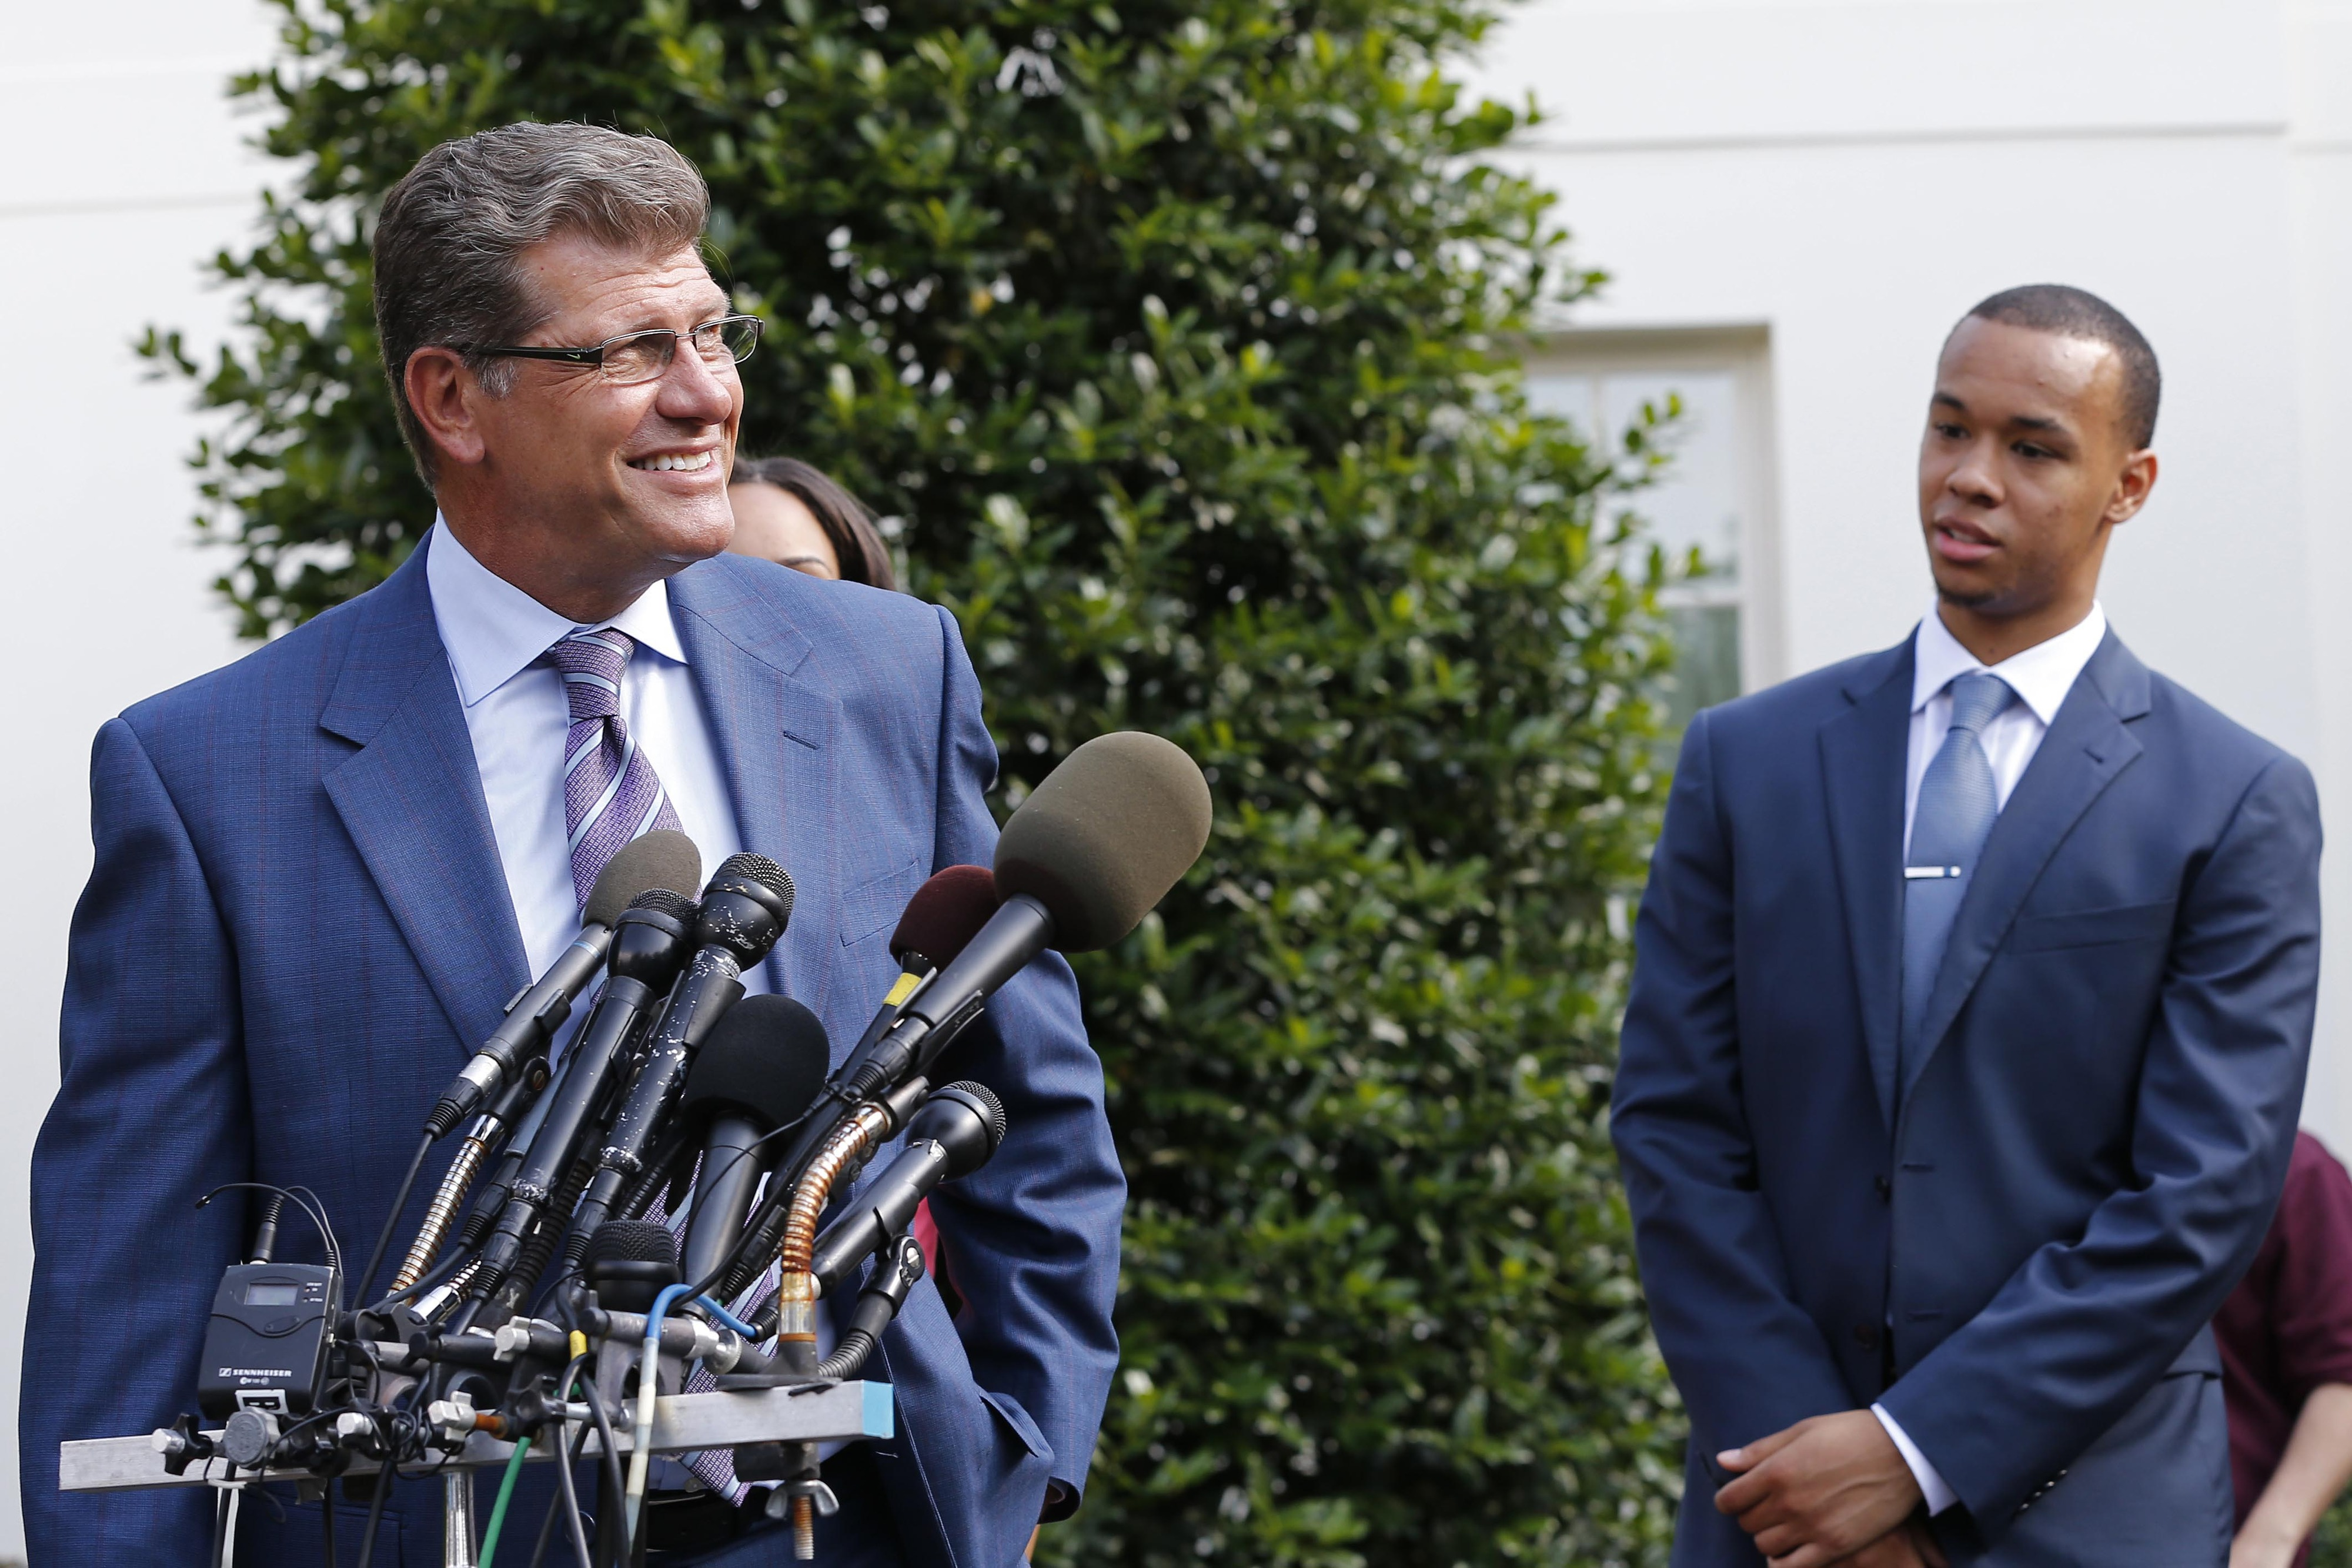 A successful college season ends with a trip to the White House. But can UConn's Geno Auriemma go for a three-peat this season?